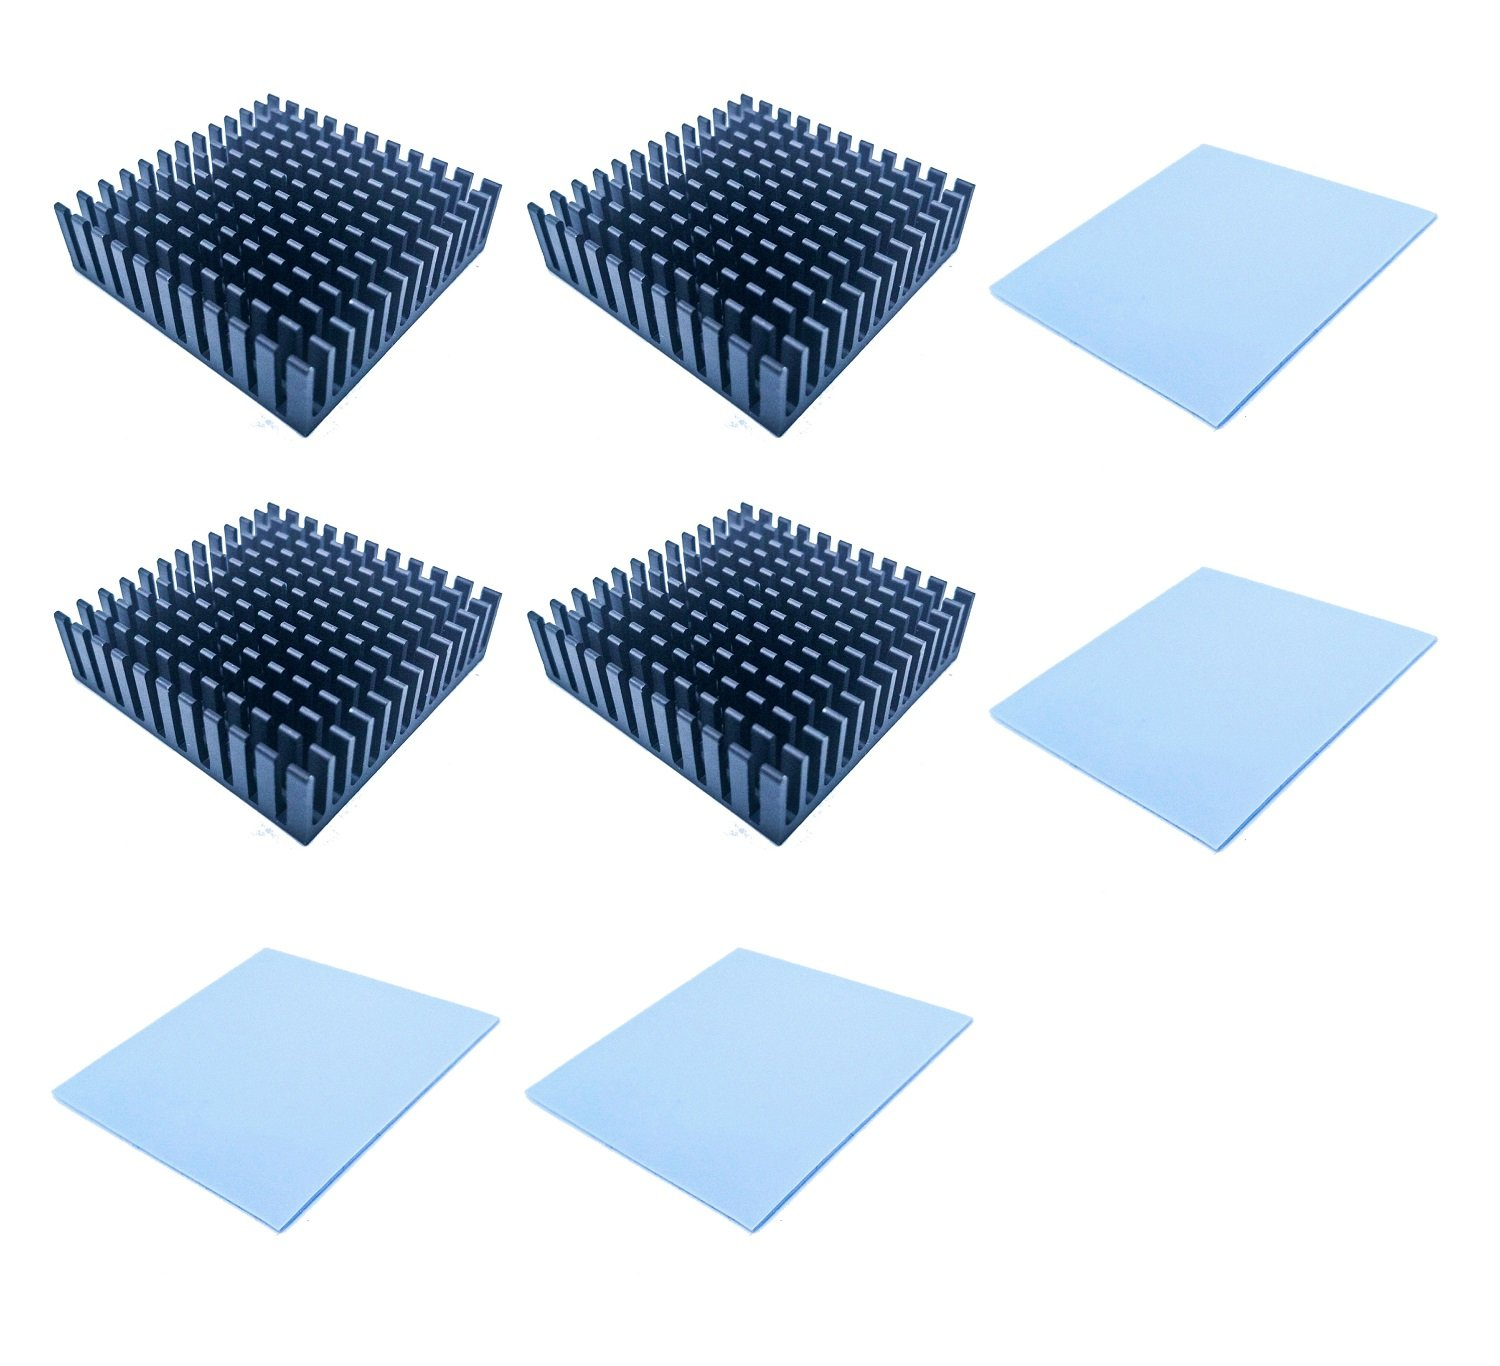 Easycargo 40x40x11mm Heatsink Kit, Cooler Heat Sink + Silicone Based Thermal Pad (40mmx40mm) (Black 4-Pack)